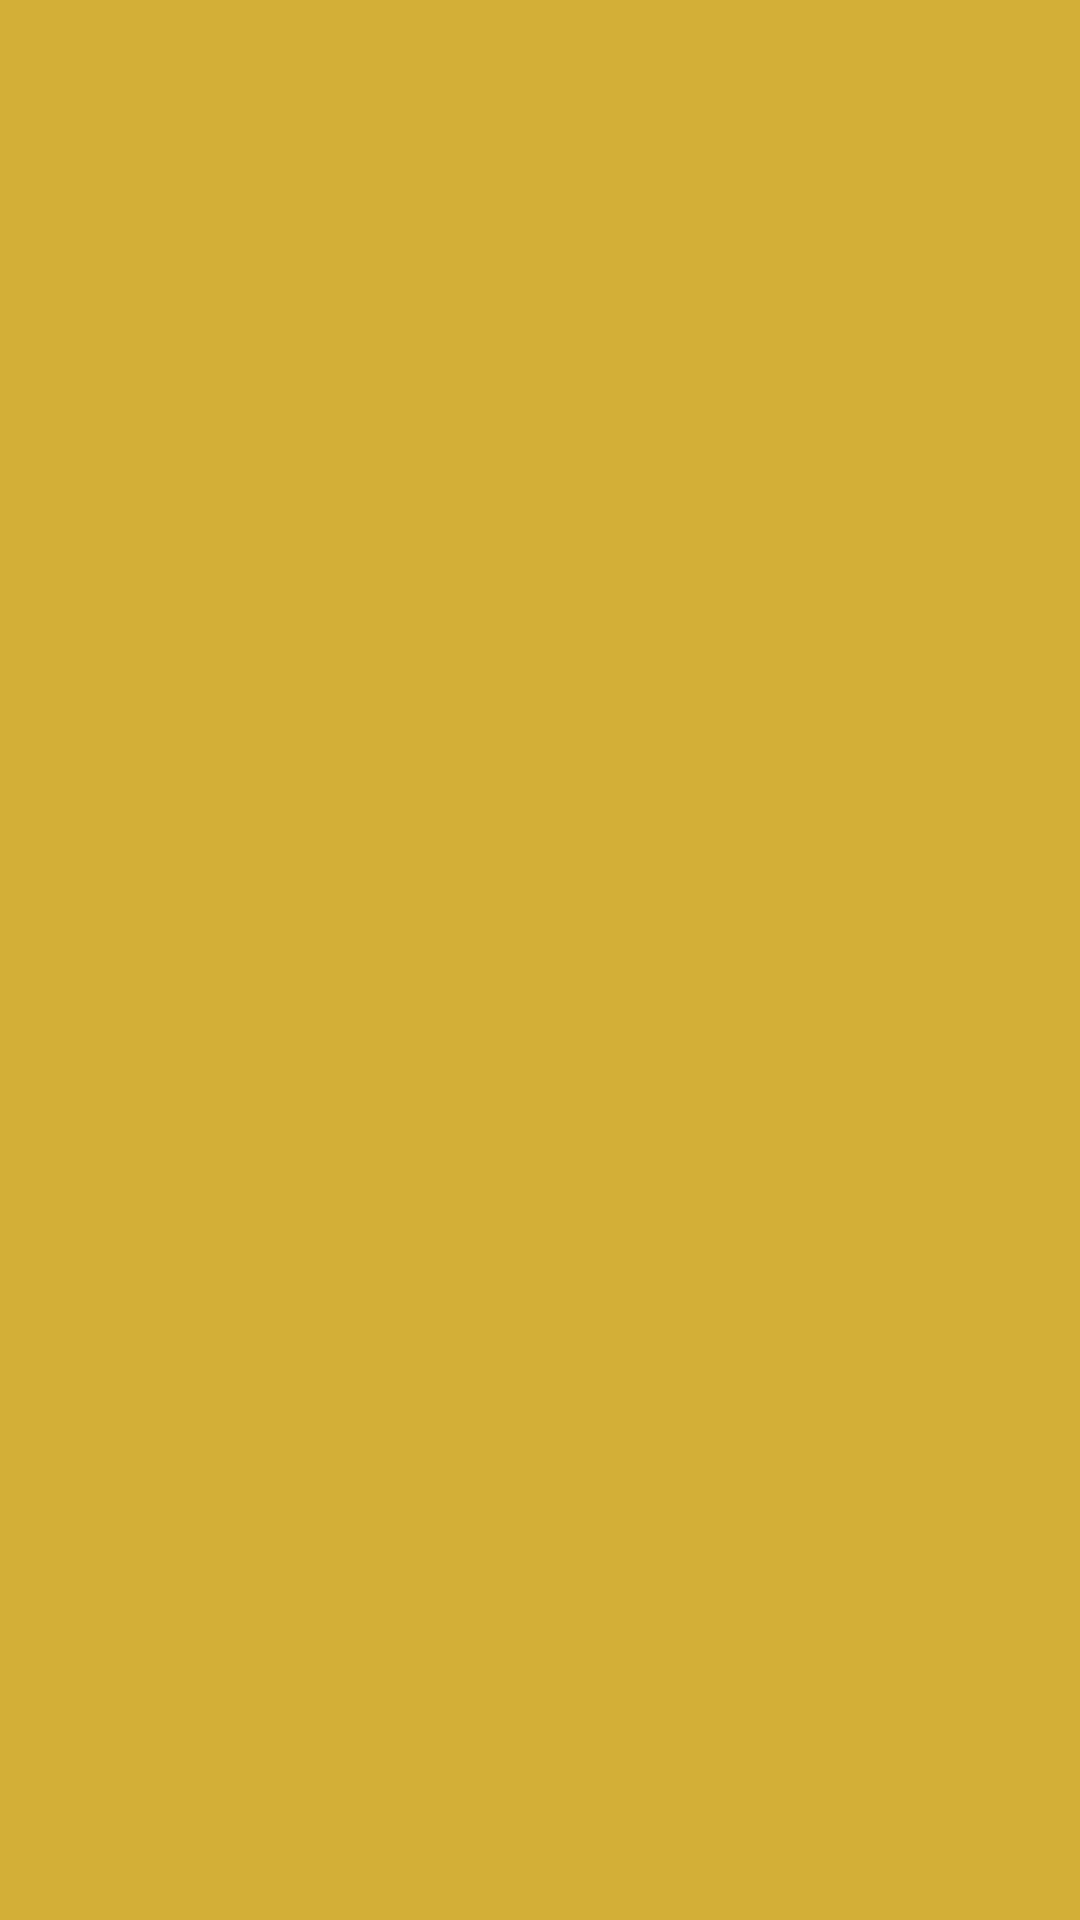 1080x1920 Gold Metallic Solid Color Background